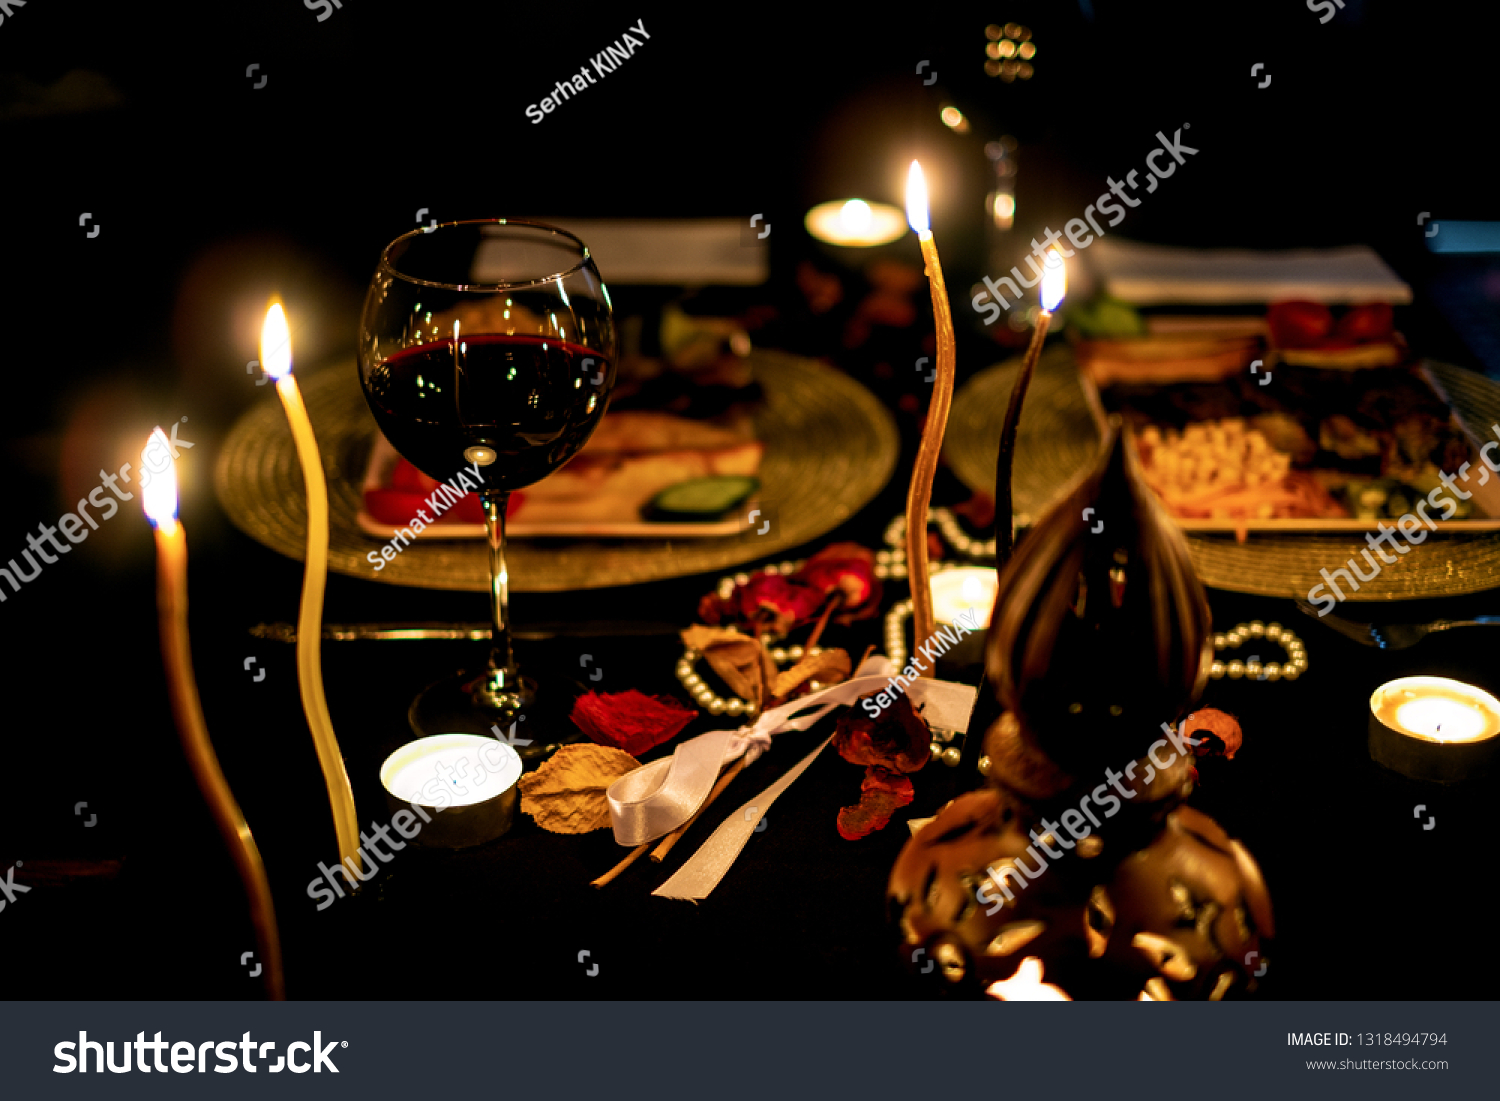 Red wine. Red wine in a glass. Dinner. Romantic dinner. Romantic dinner with red wine. #1318494794